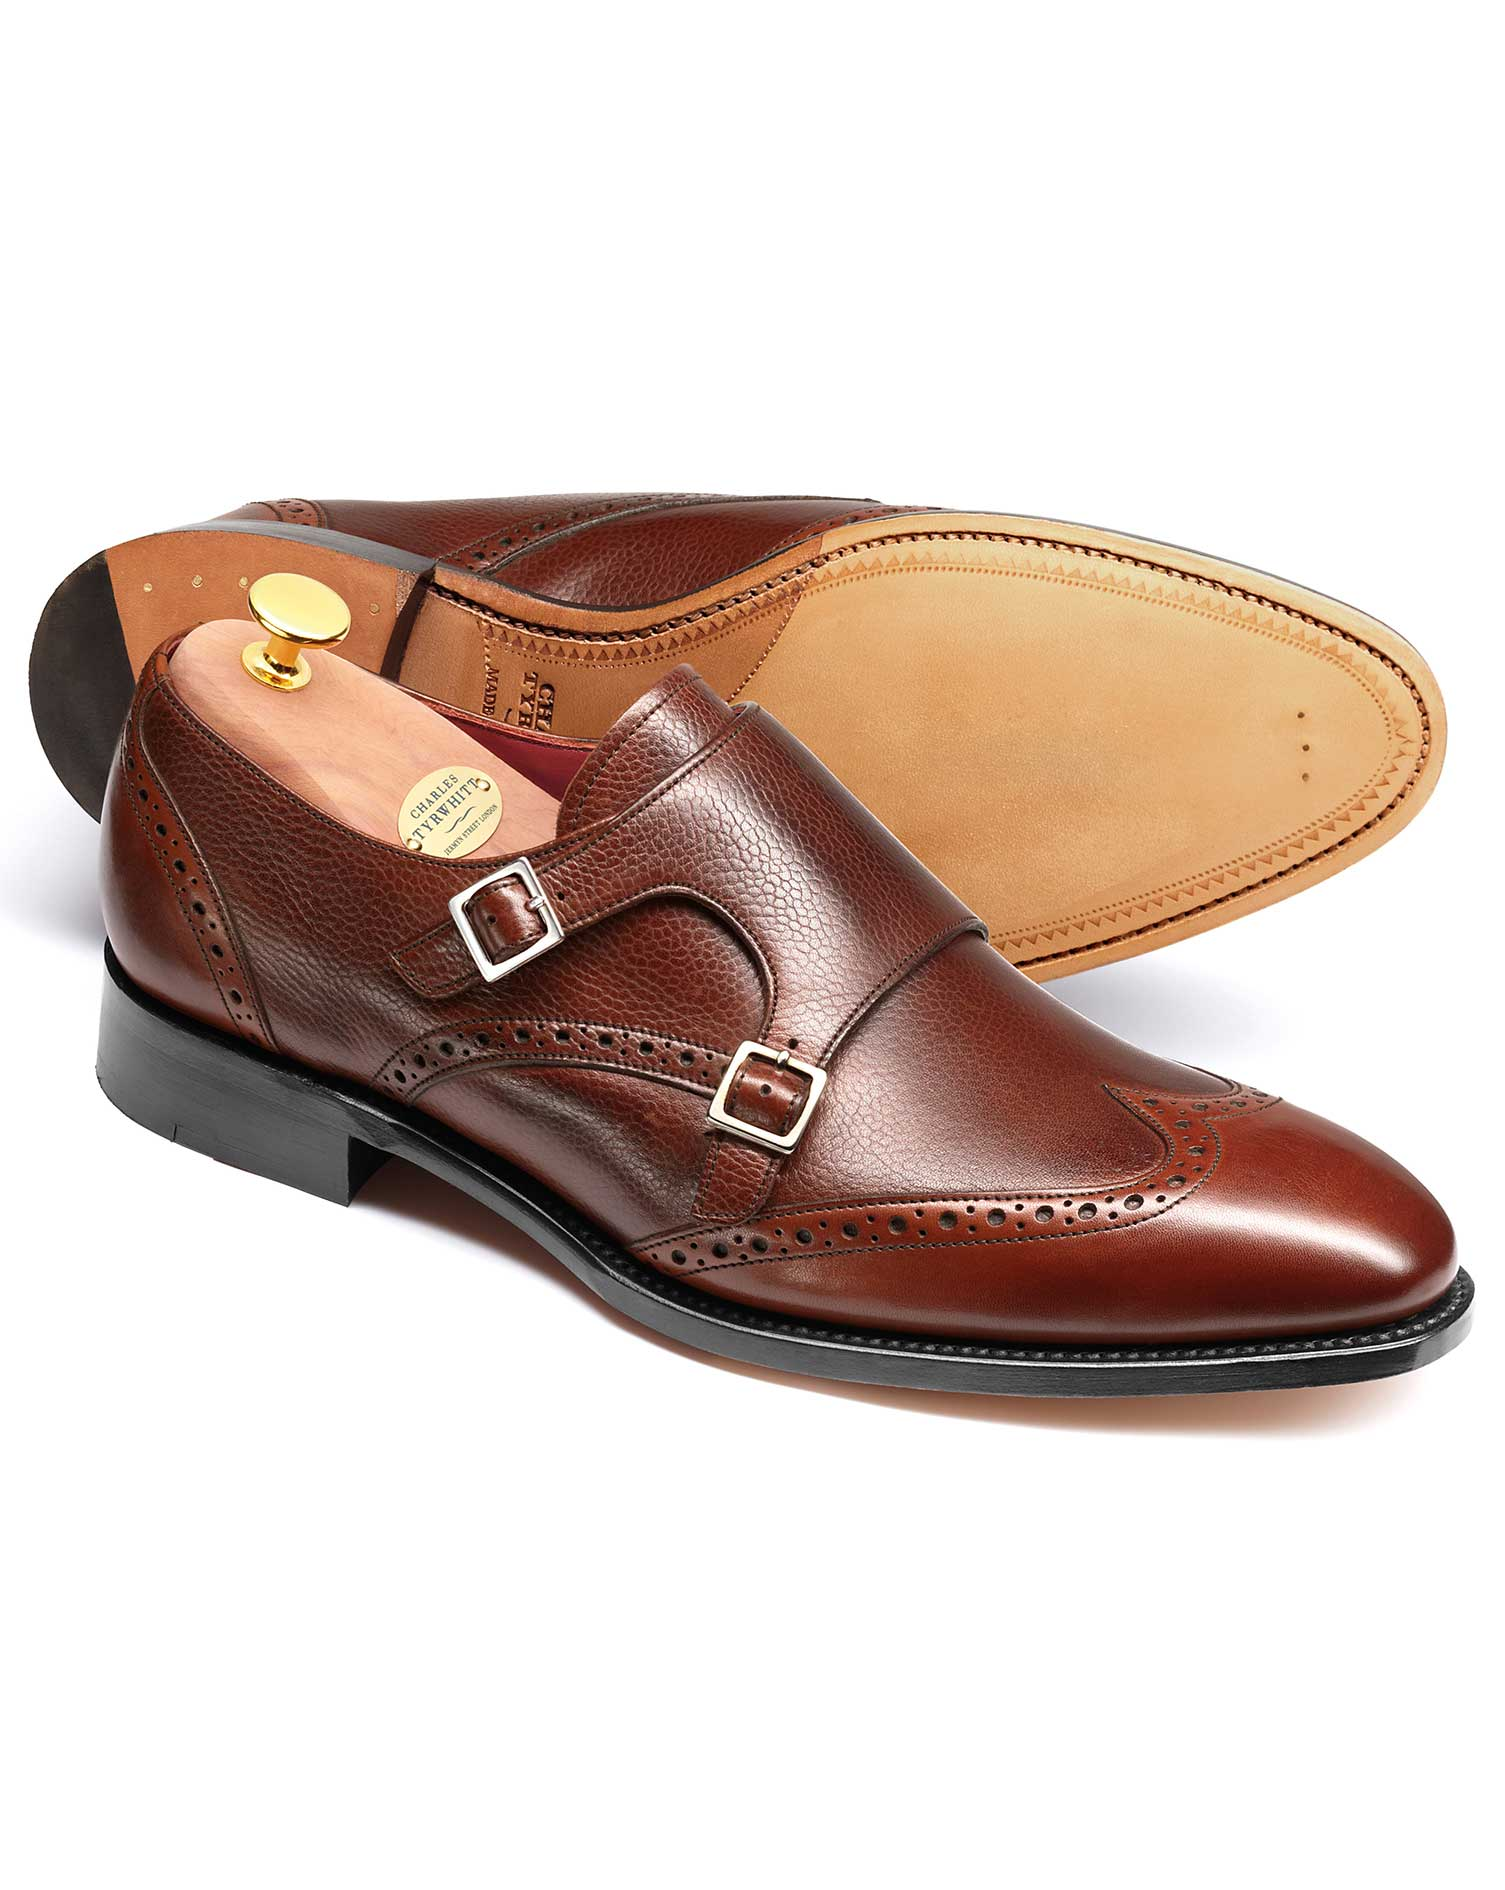 Brown Edmonton Calf Leather Toe Cap Brogue Monk Shoes Size 13 R by Charles Tyrwhitt